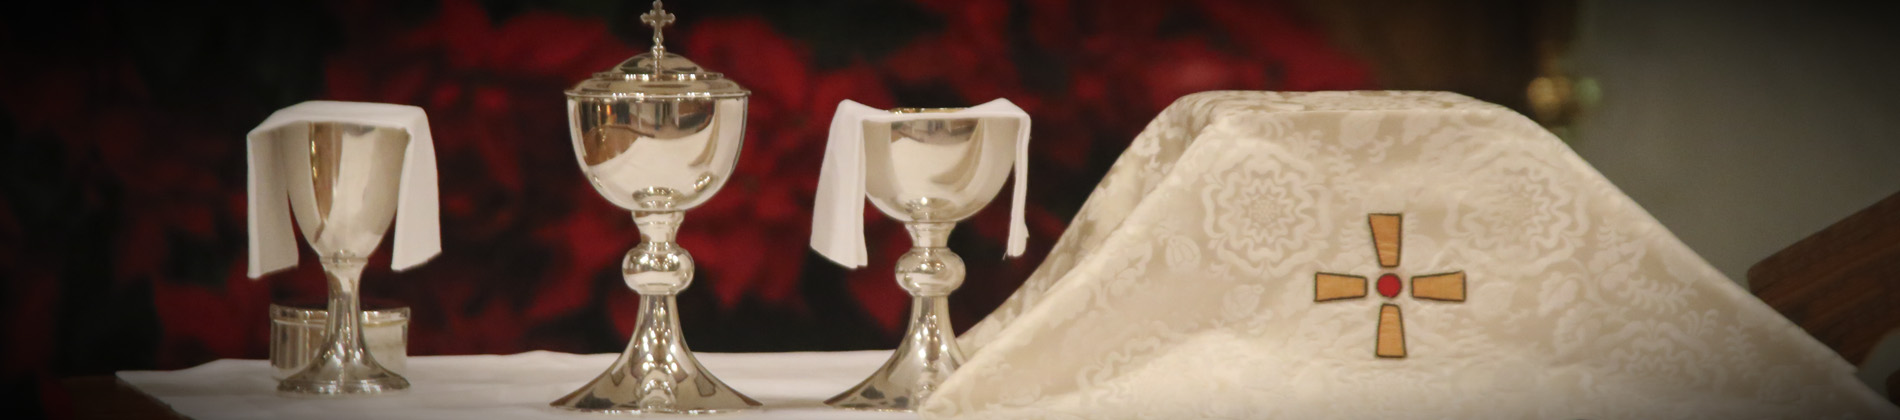 communion table with poinsettias